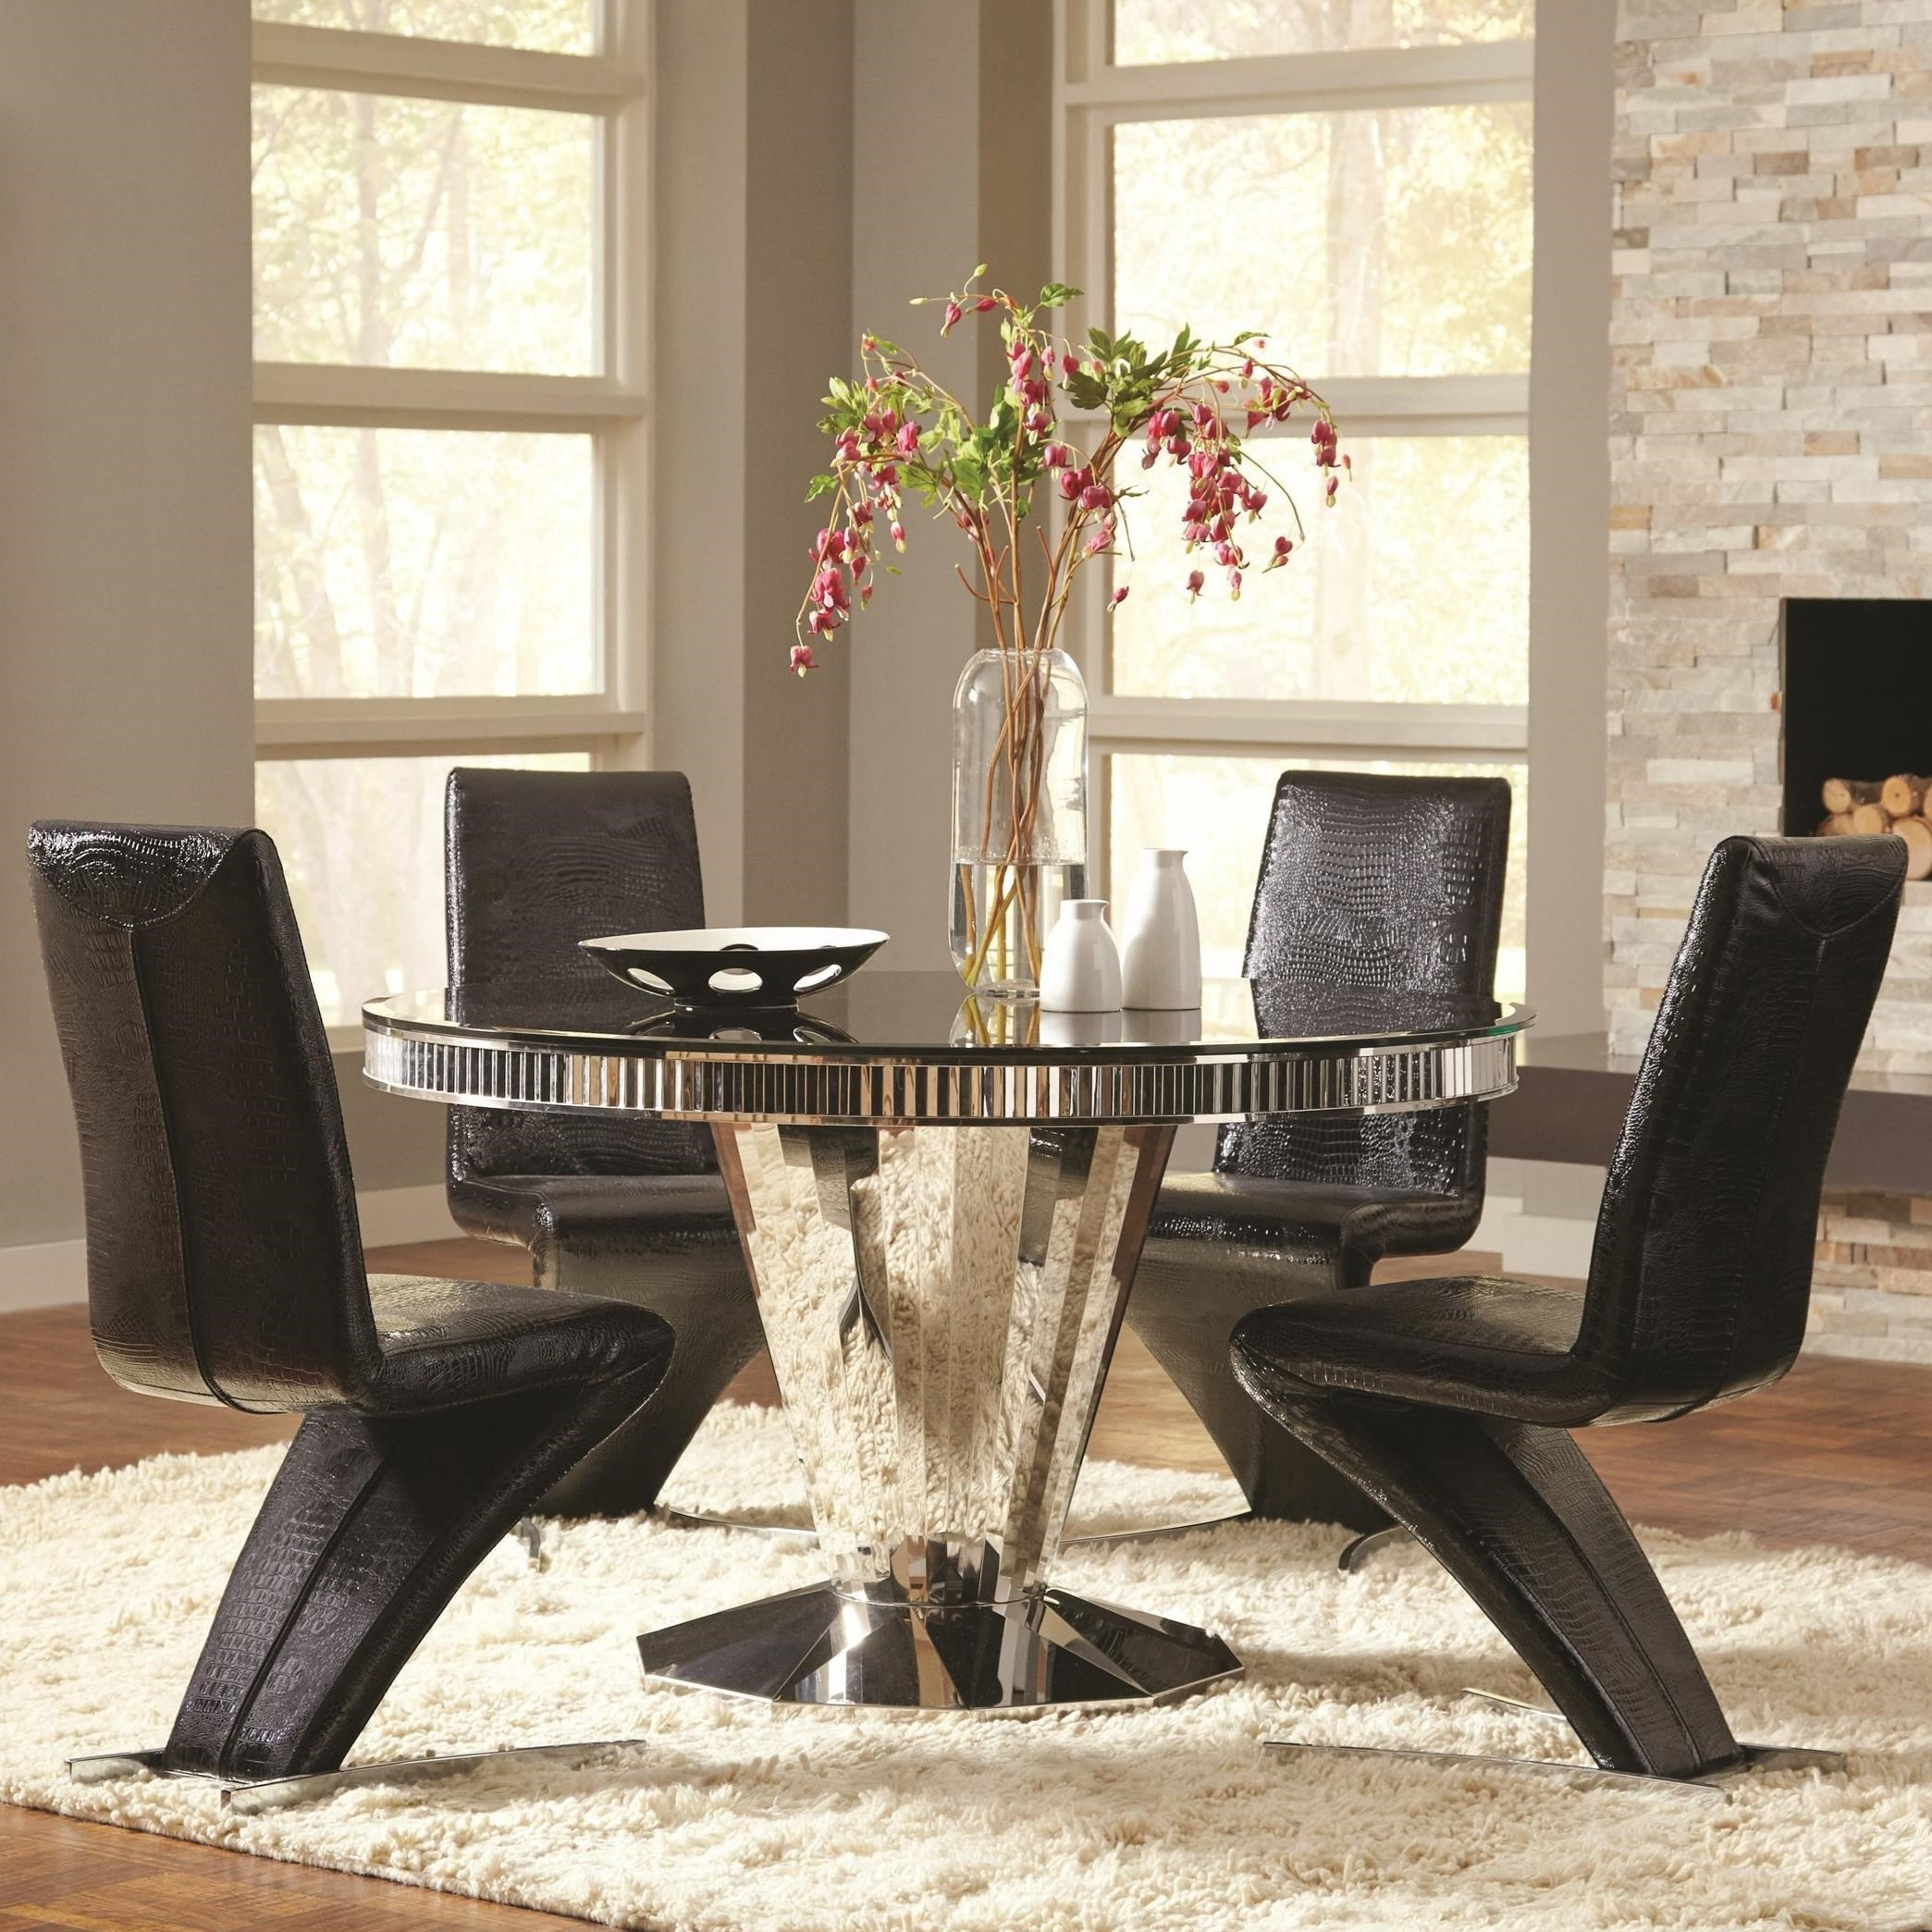 Barzini 5 Piece Table and Chair Set by Coaster at Lapeer Furniture & Mattress Center